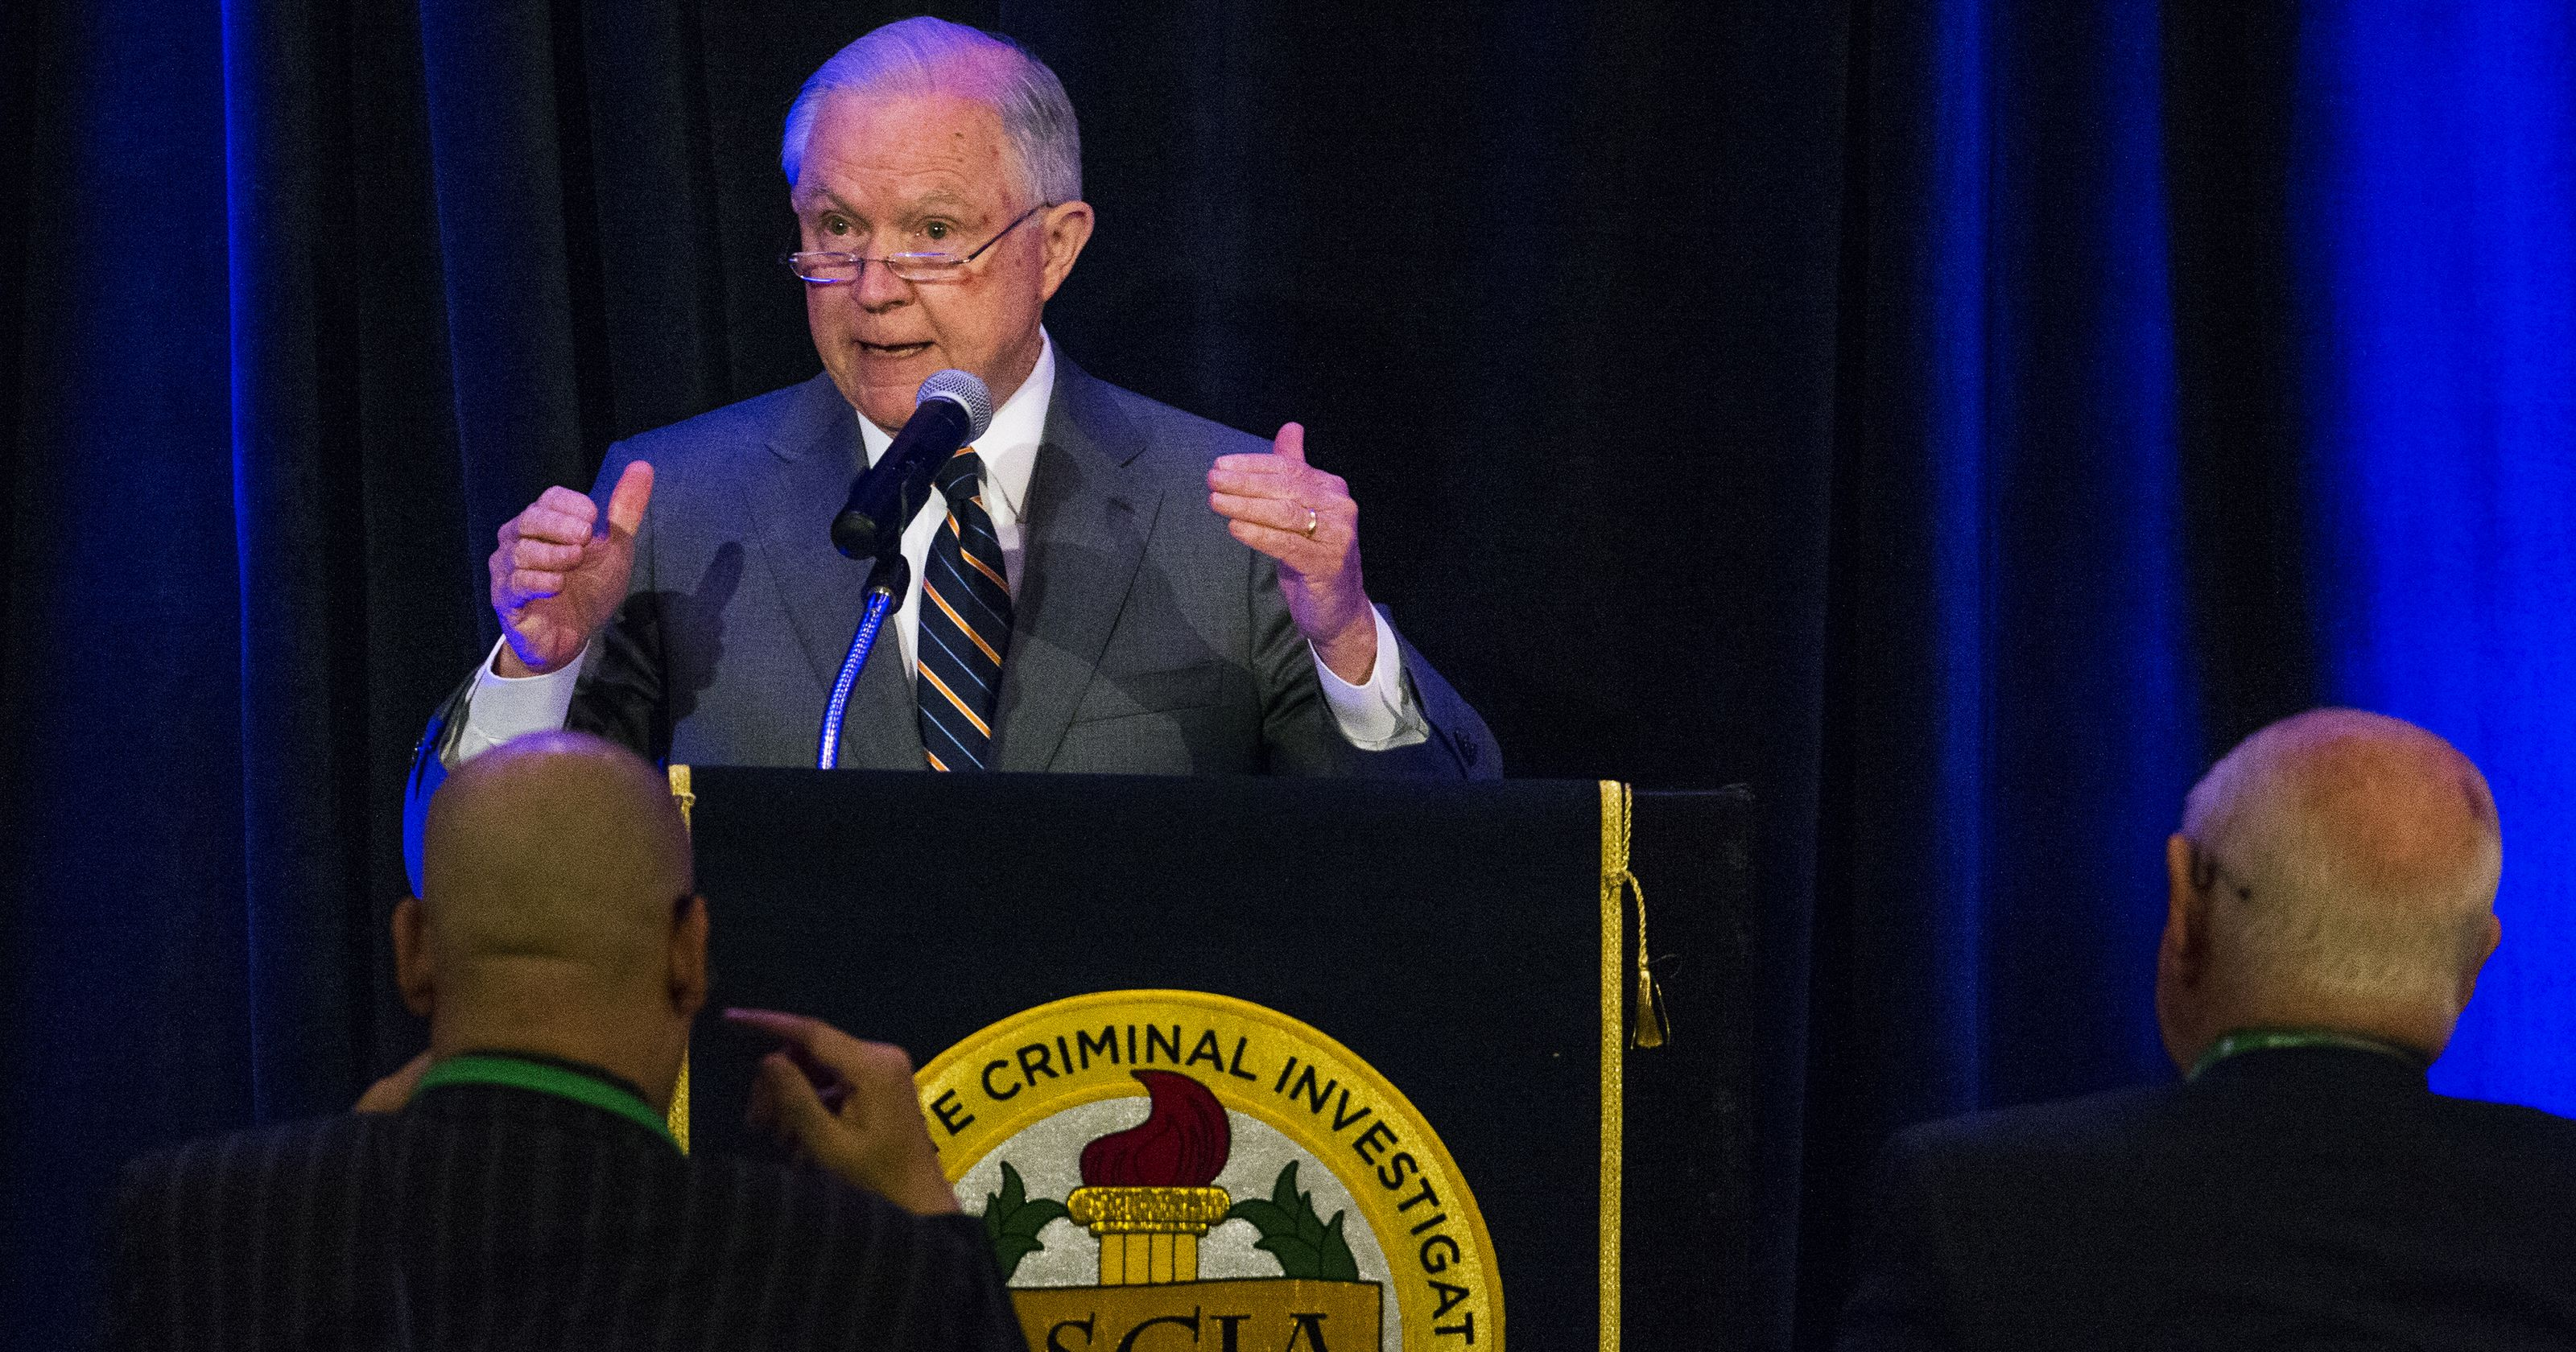 Attorney General Jeff Sessions of one of many federal officials who spoke at ASCIA